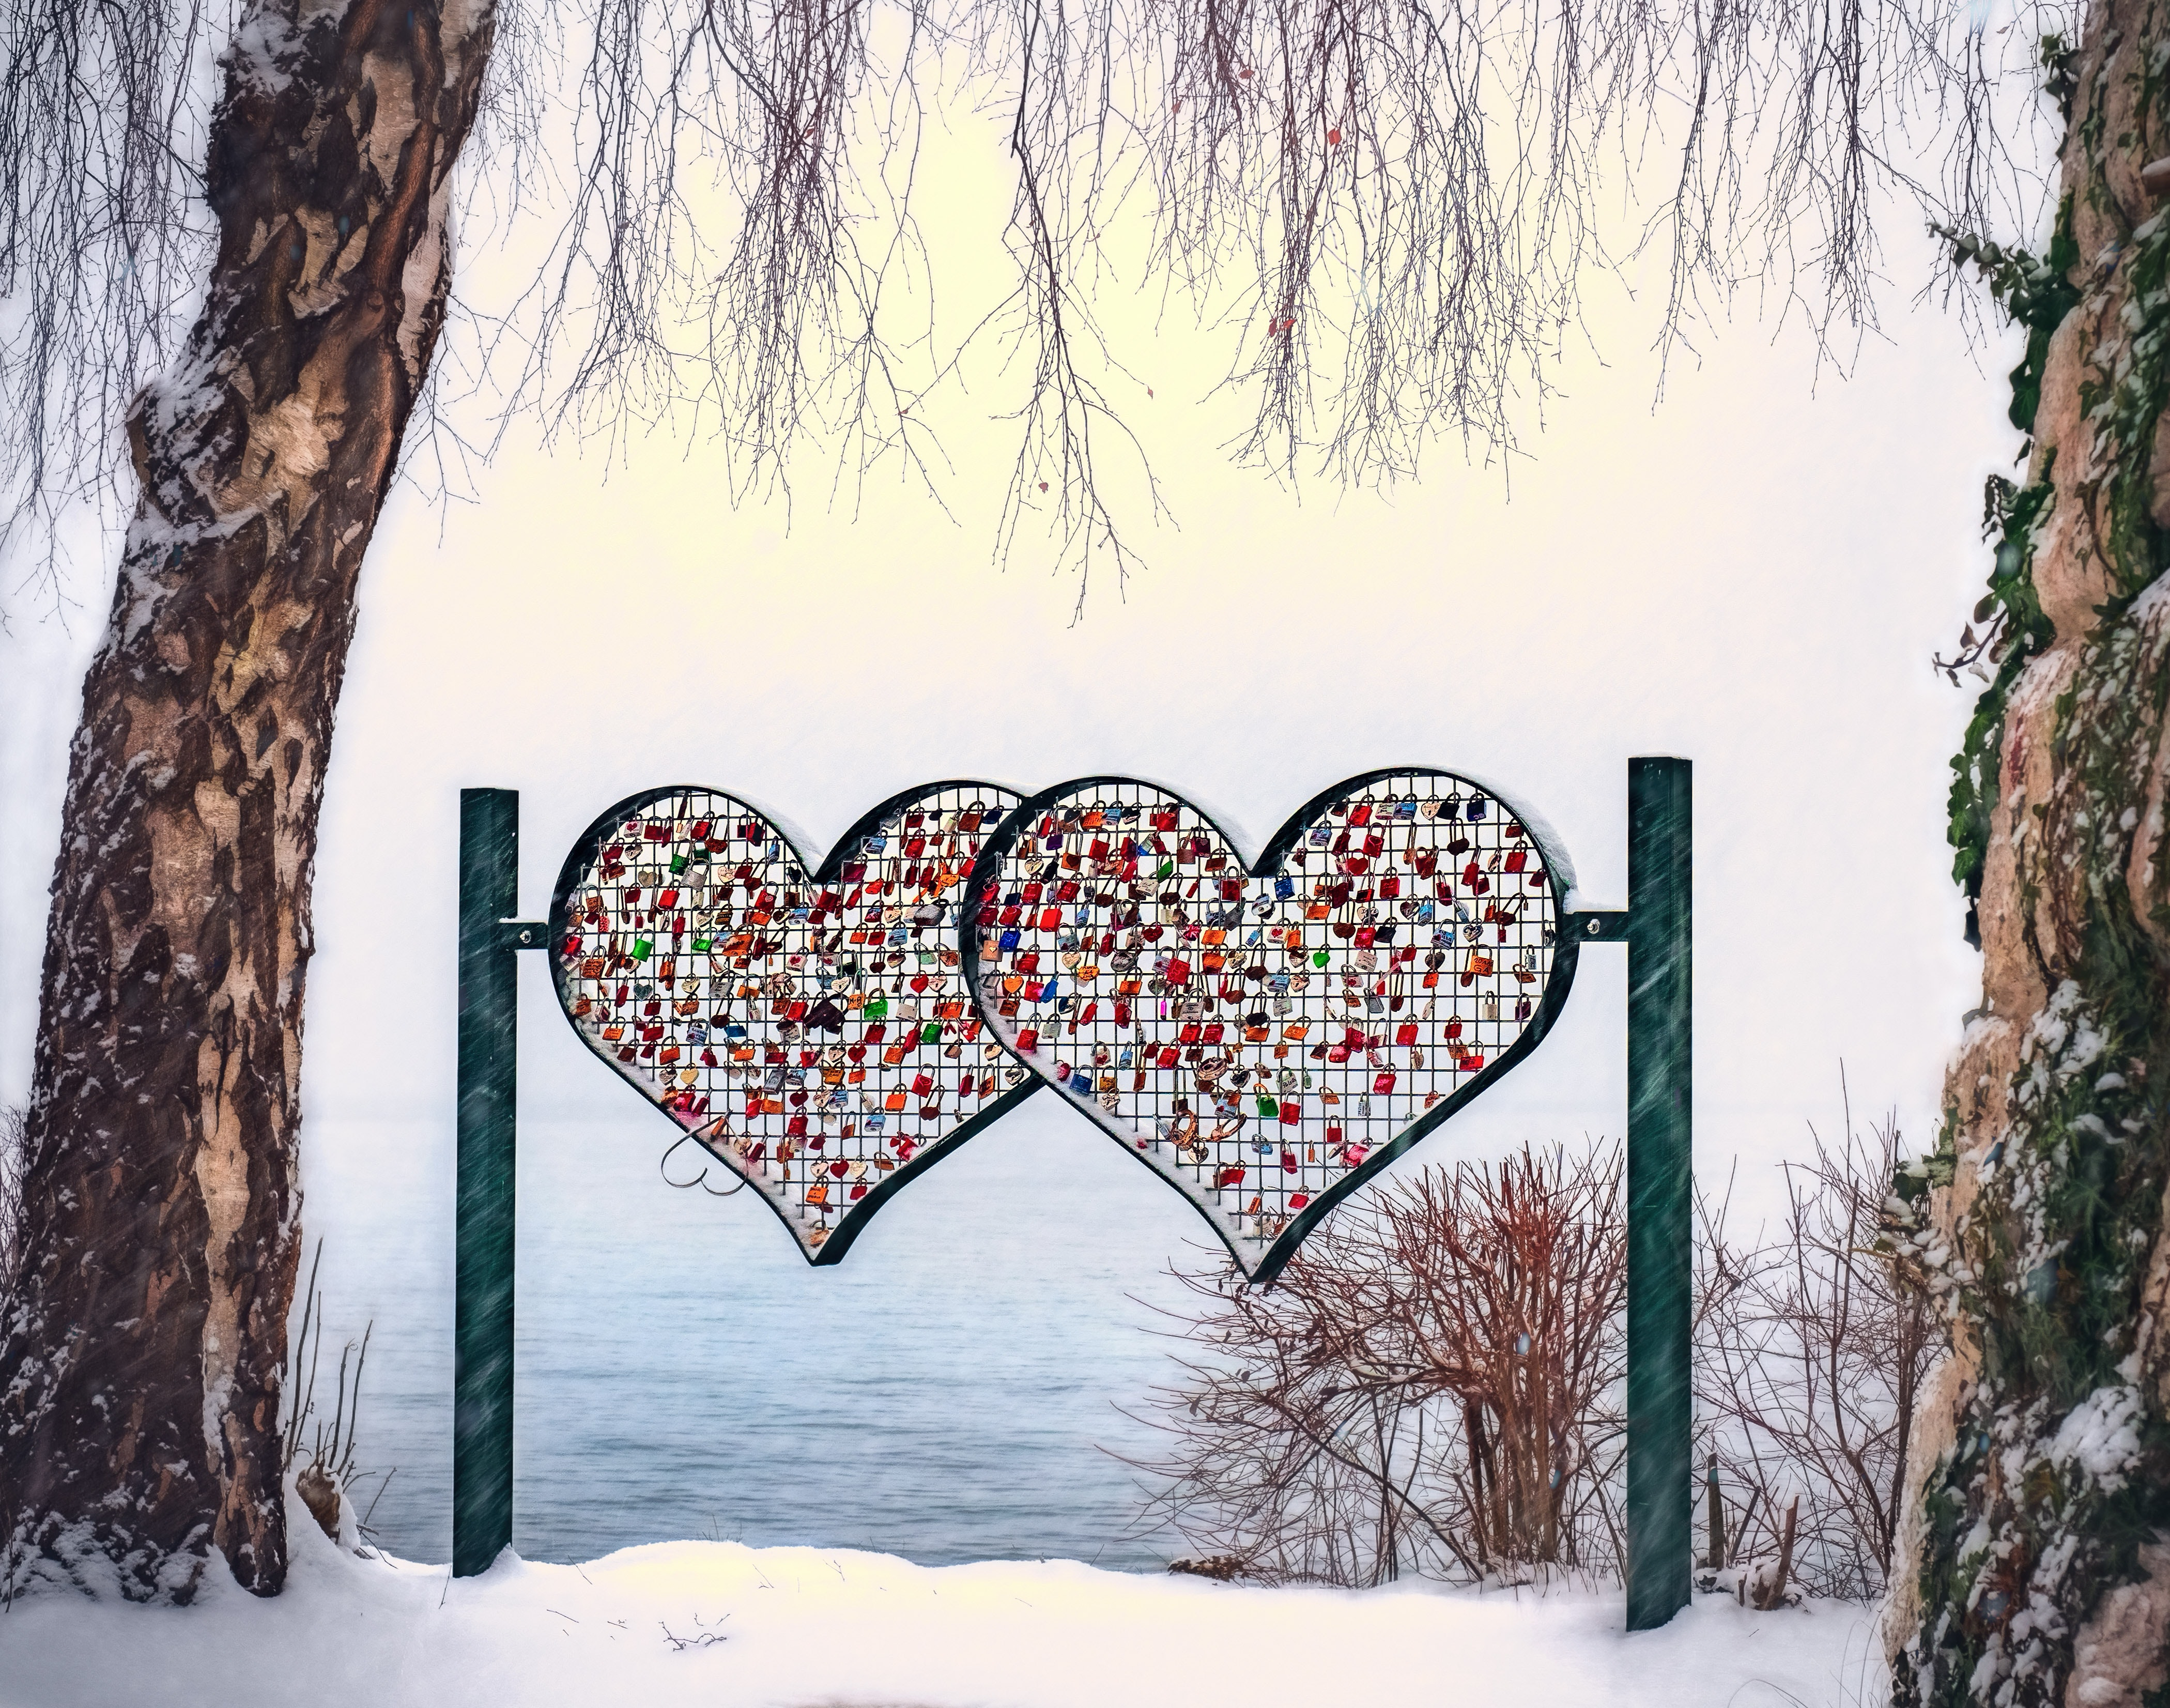 Heart-shape Multicolored Stand, Atmosphere, Winter, Weather, Valentine's day, HQ Photo